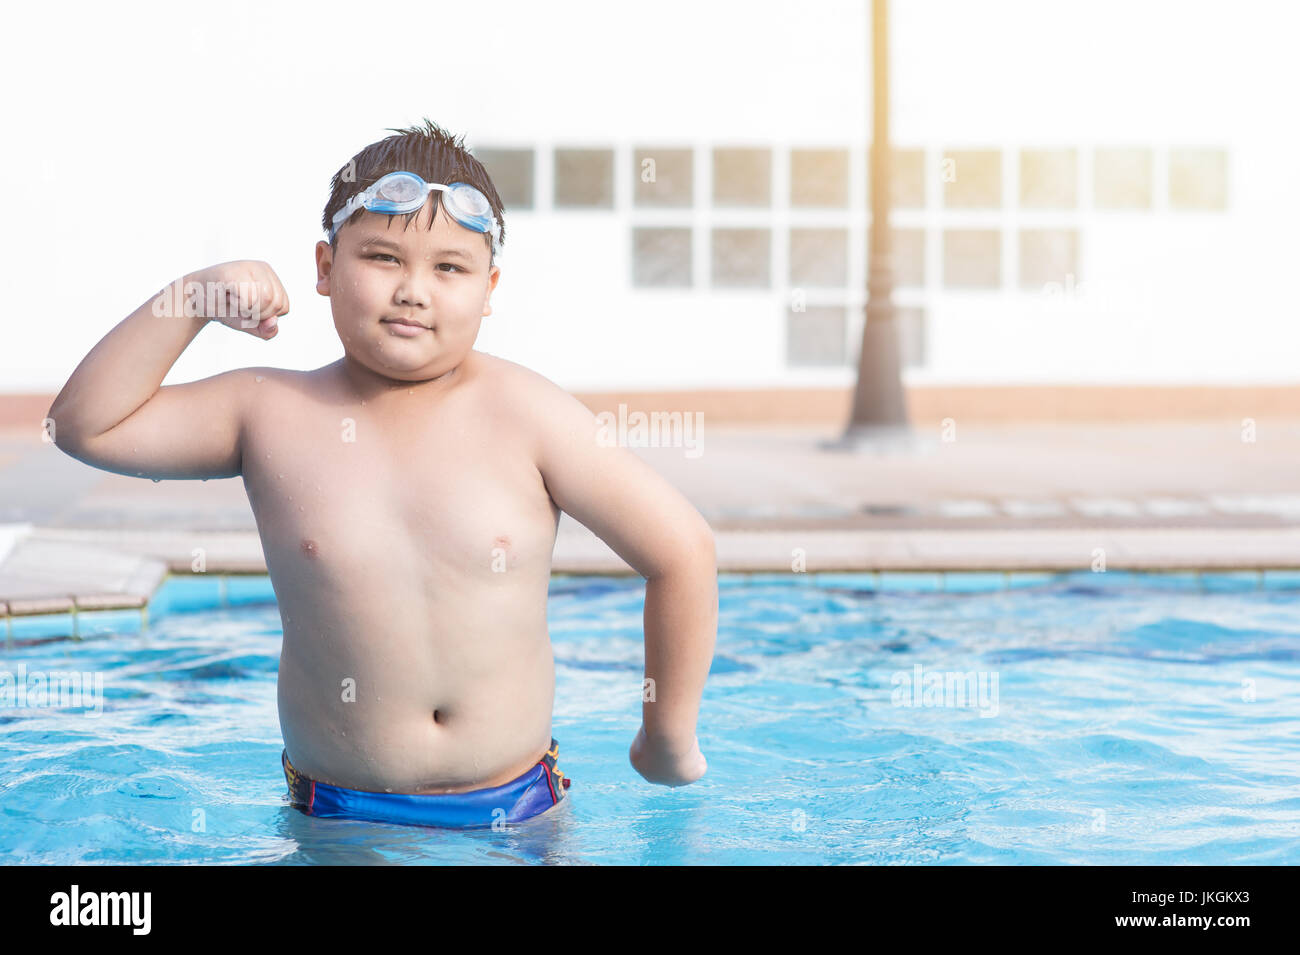 Reunión romano Conquista  Fat Kid Sport Pool High Resolution Stock Photography and Images - Alamy